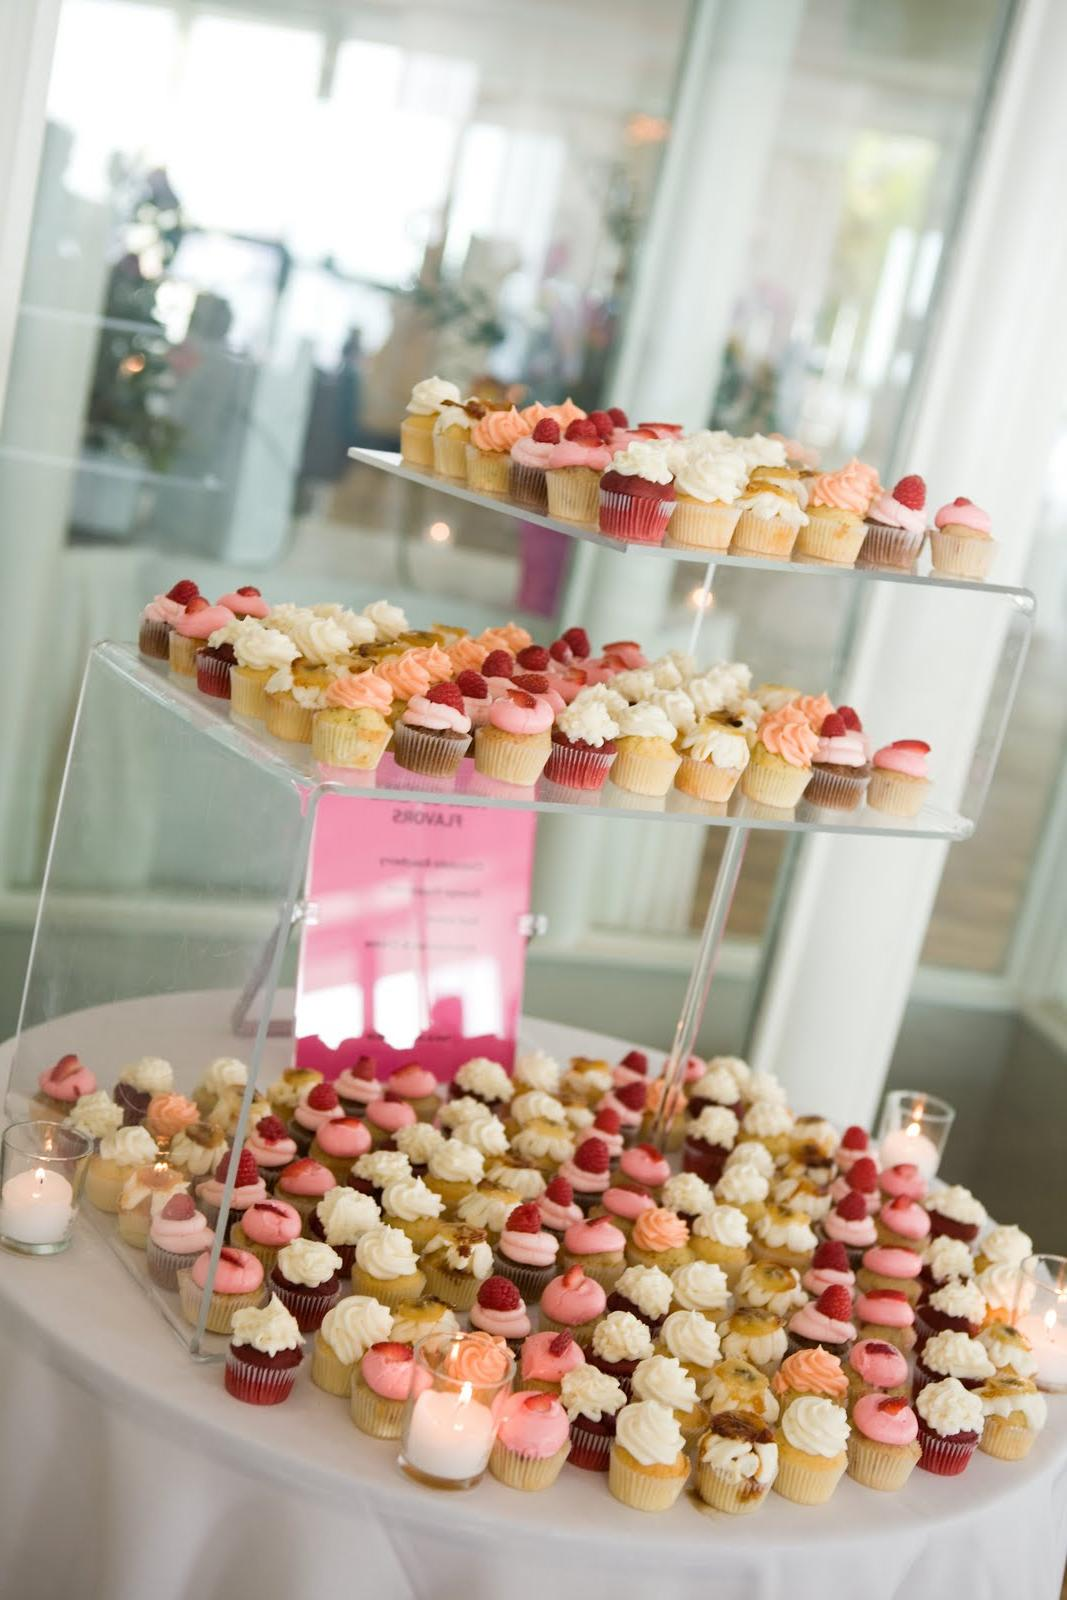 of lovely mini-cupcakes